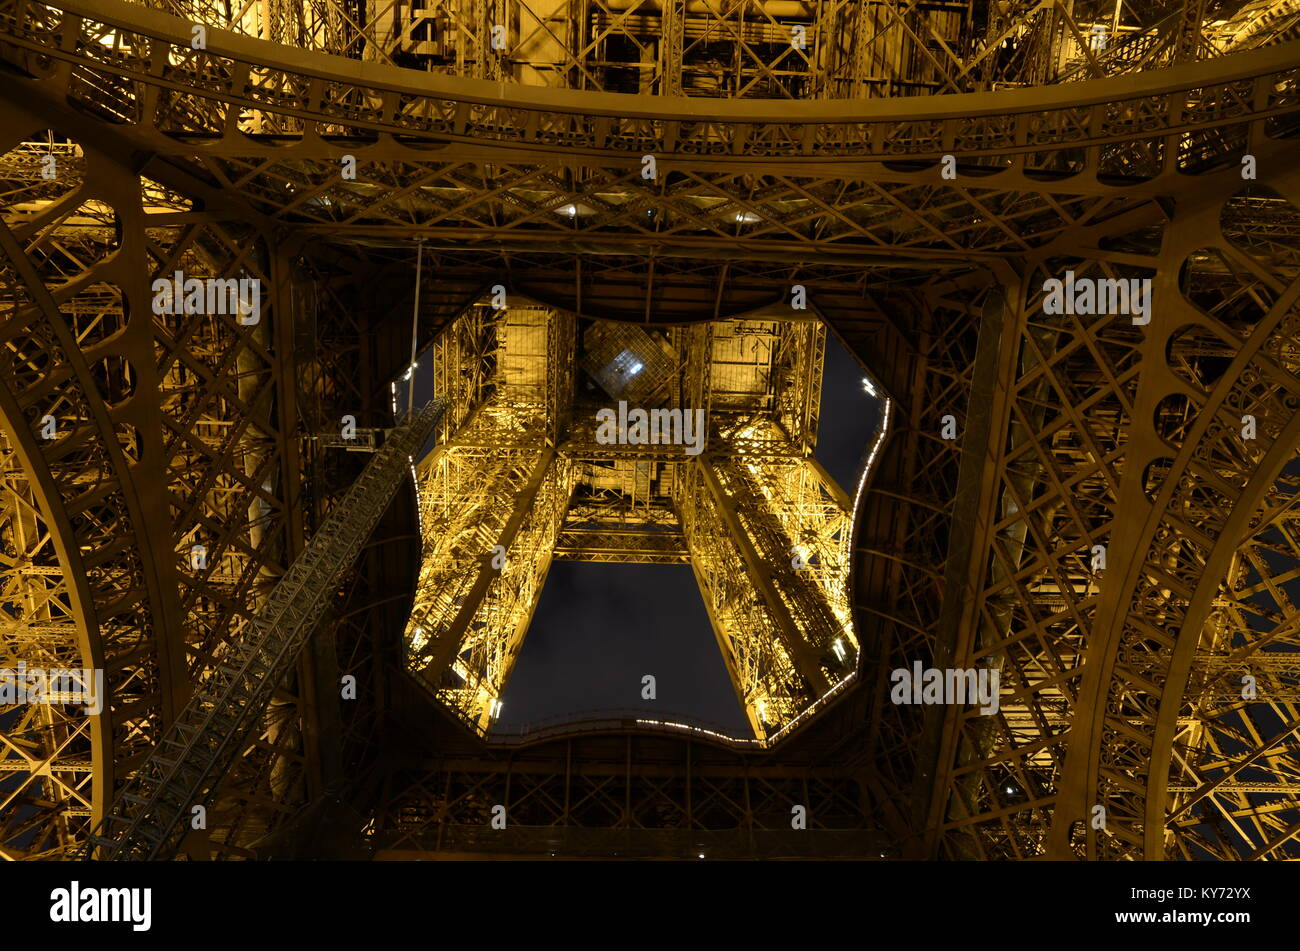 Eiffel Tower illuminated at night from below. Paris, France. Space for copy - Stock Image